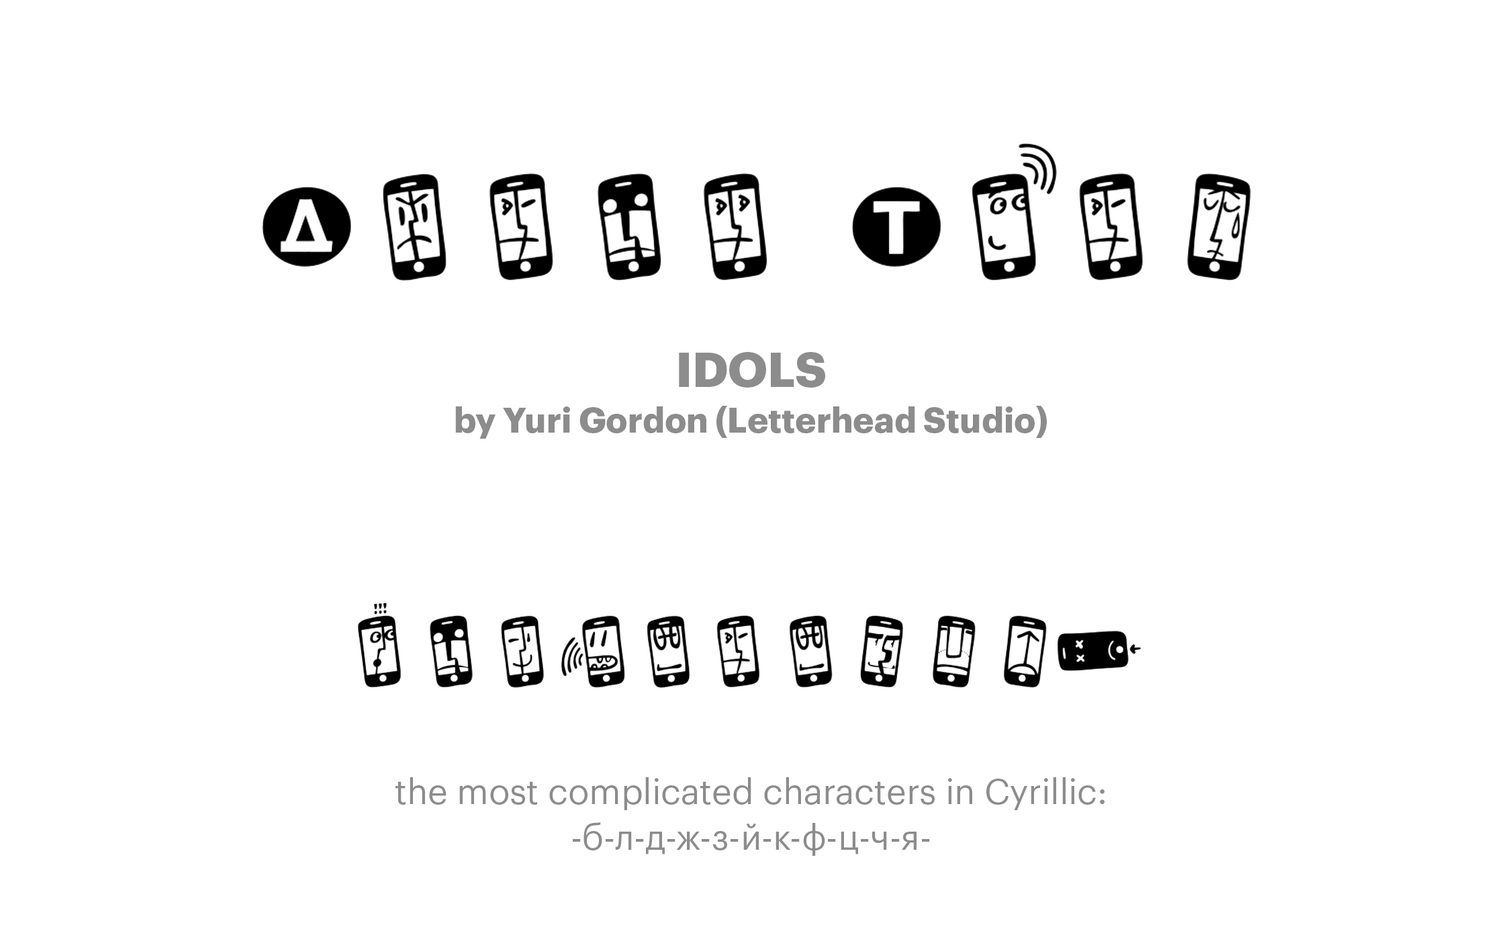 IDOLS-by-Yuri-Gordon-(Letterhead-Studio)